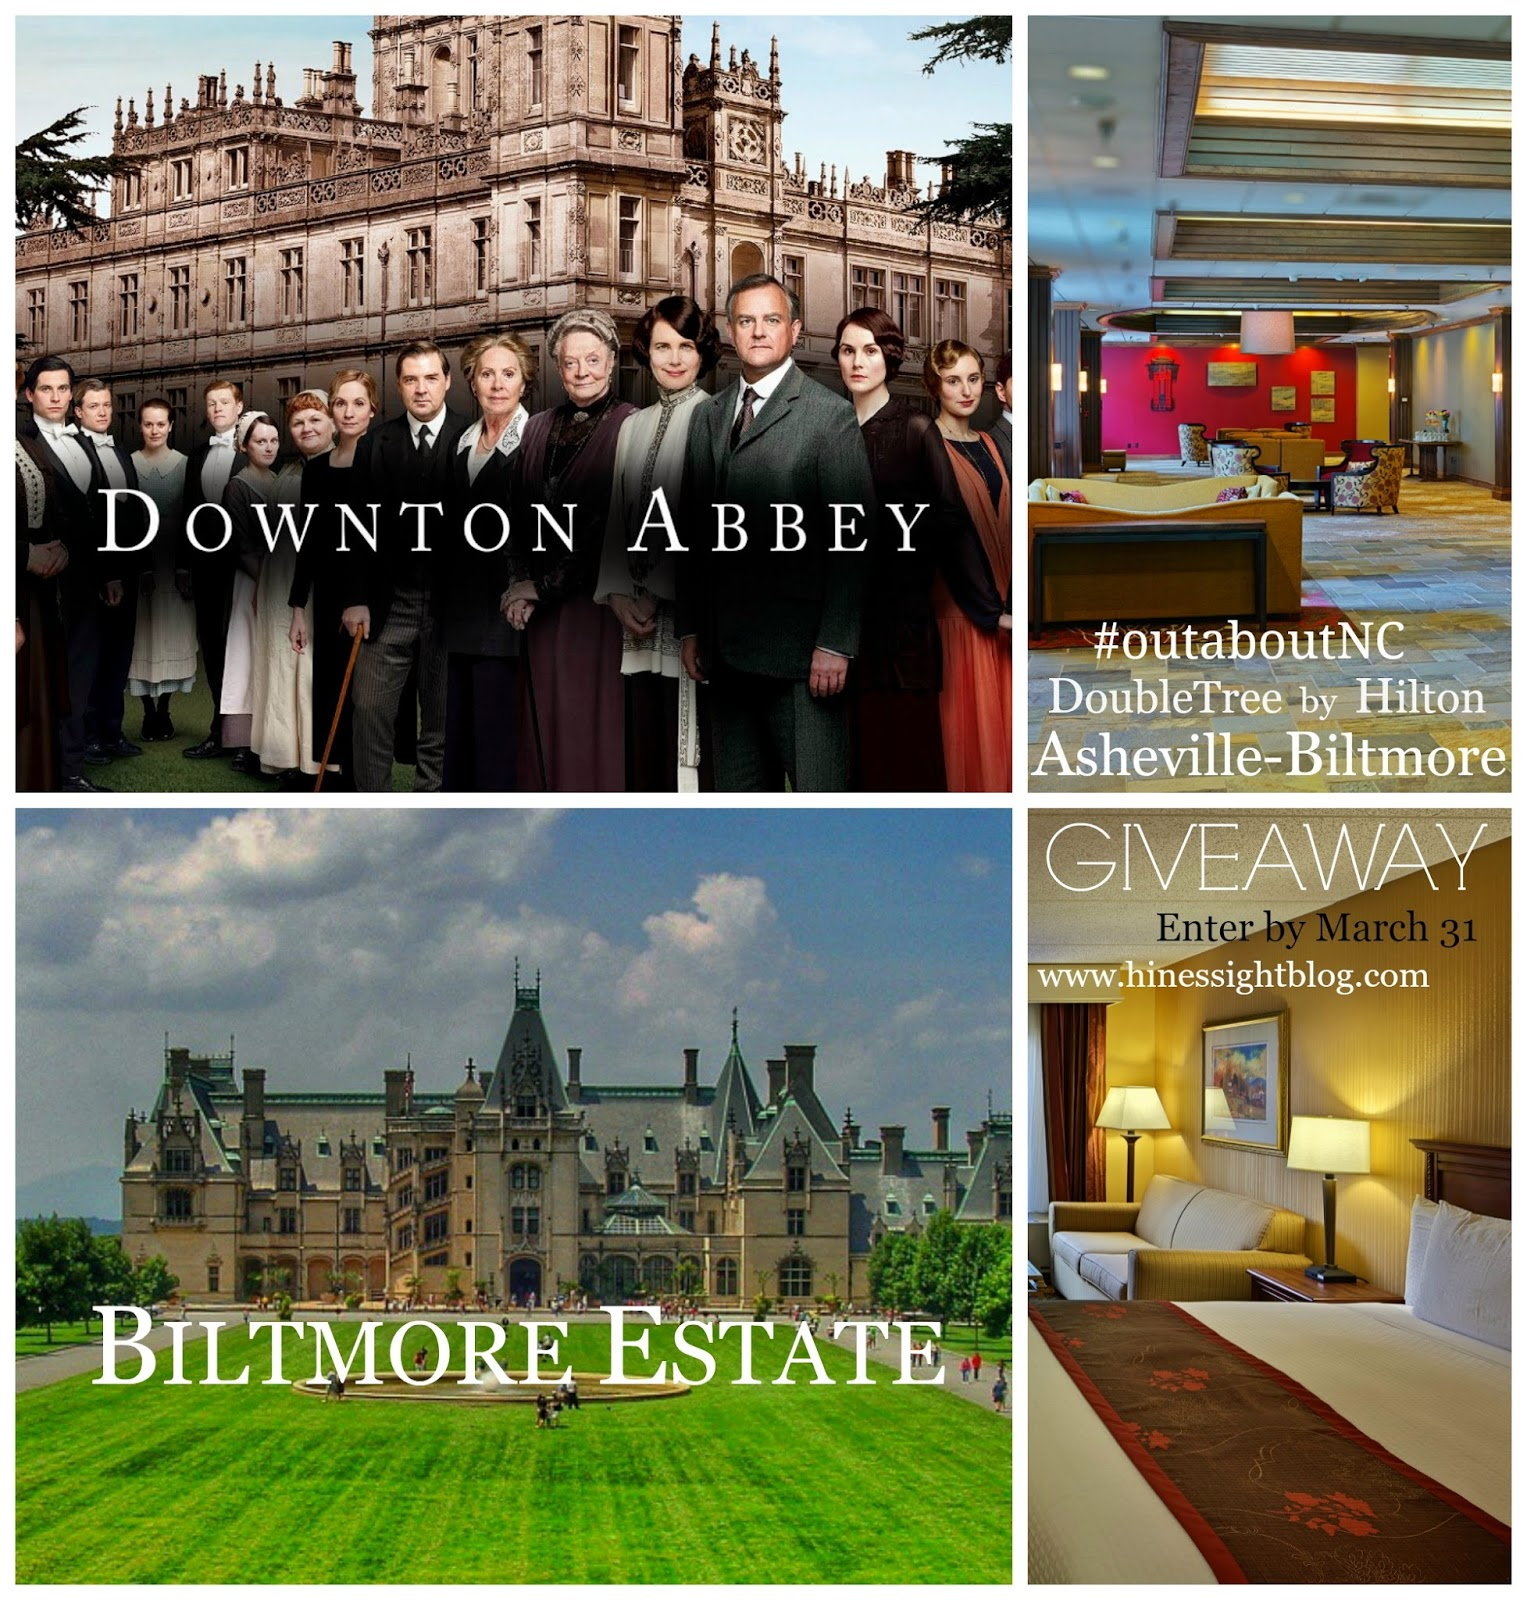 #outaboutnc Giveaway: The Downton Abbey Package at DoubleTree Asheville-Biltmore. Ends March 31, 2015.